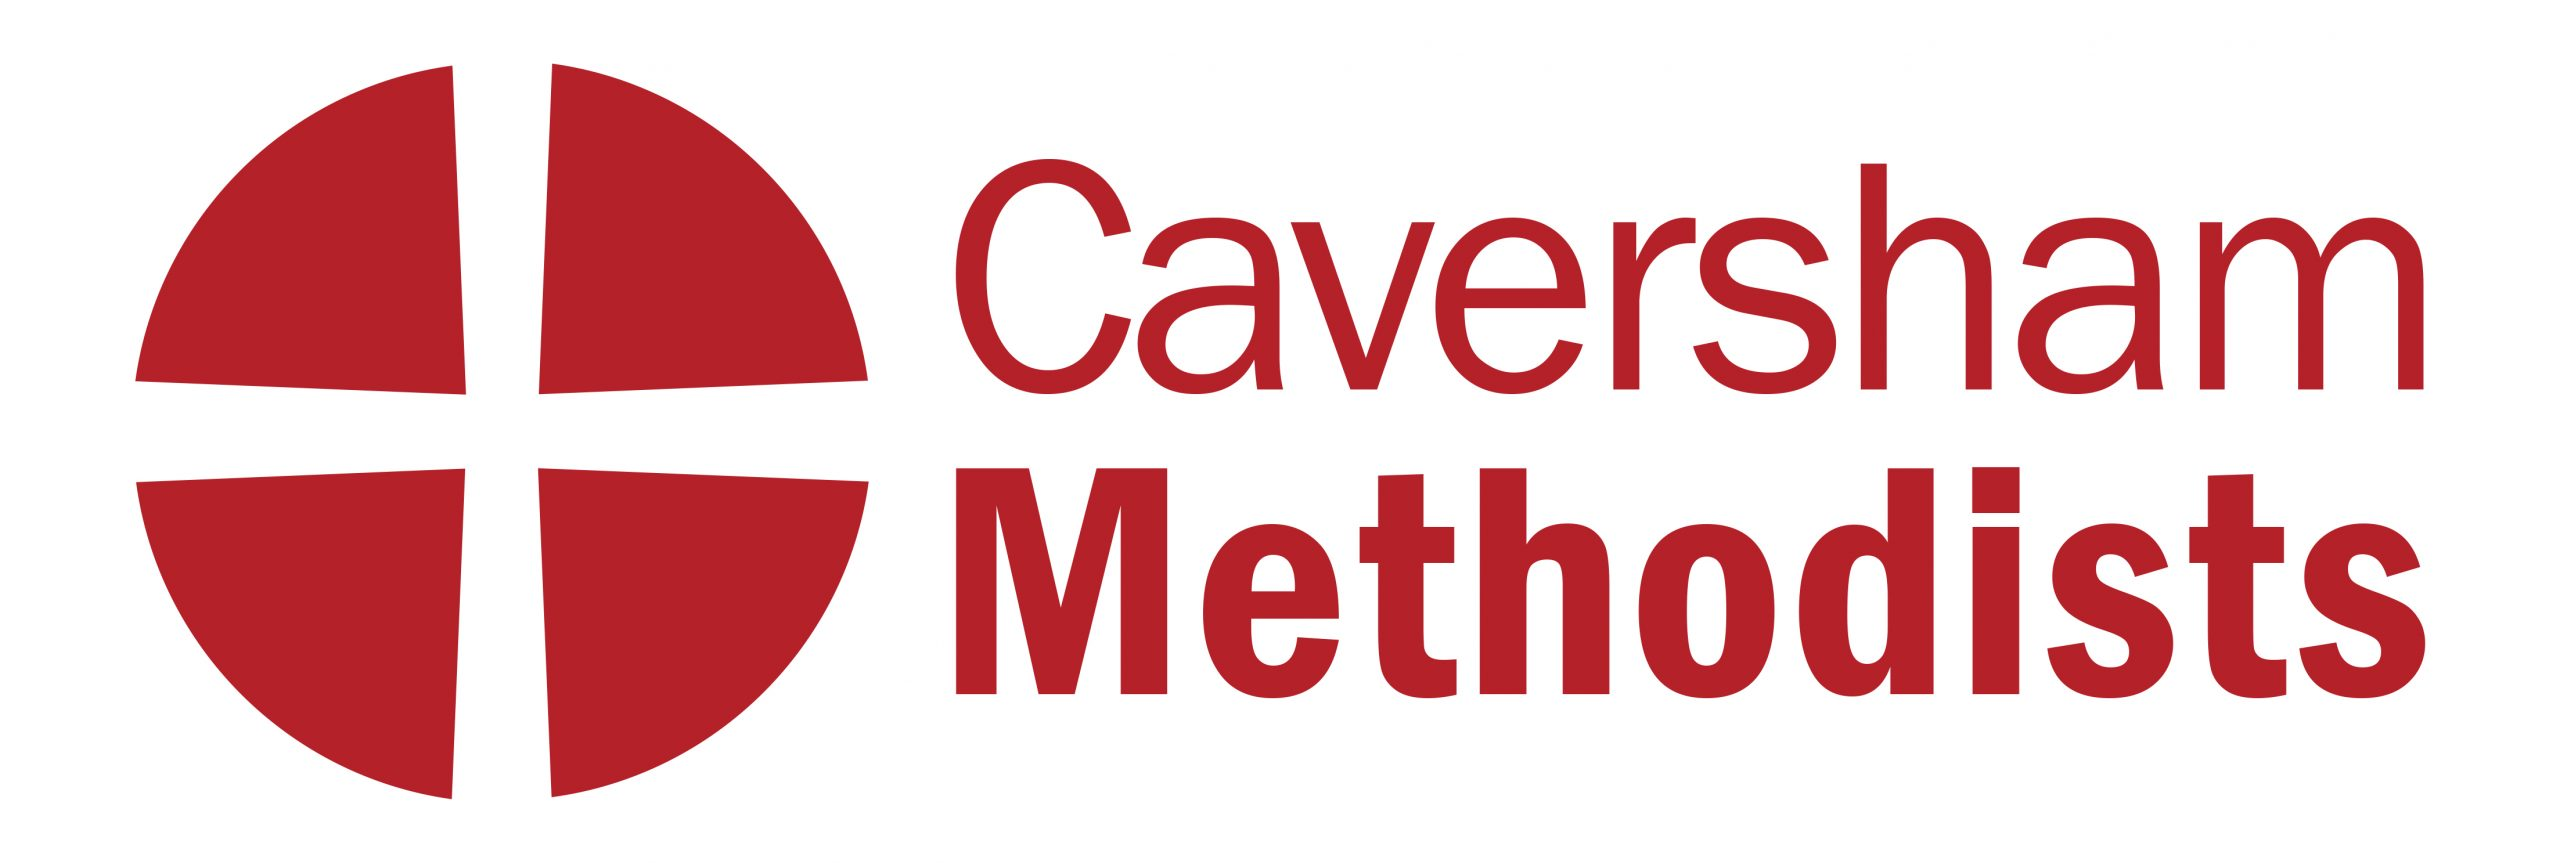 Caversham Methodists